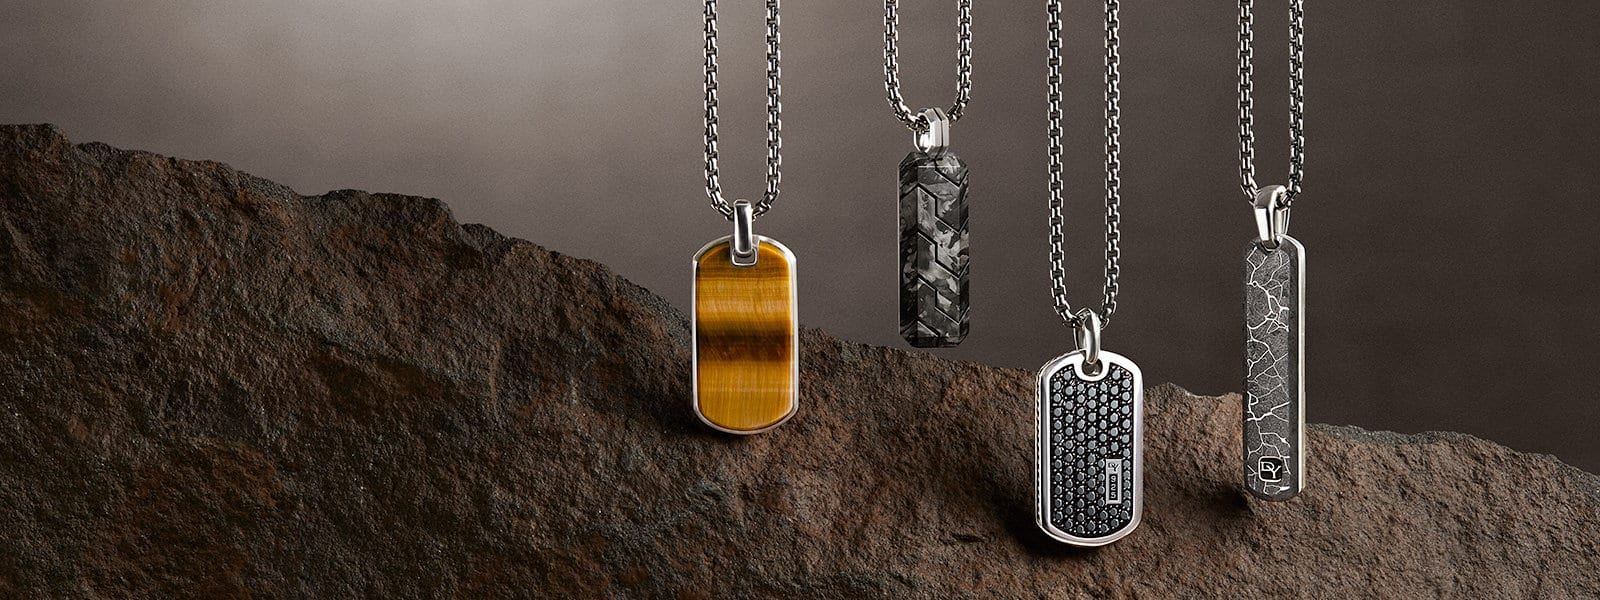 David Yurman tags in sterling silver with tiger's eye, forged carbon, black diamonds and fused meteorite against a backdrop of a stone.